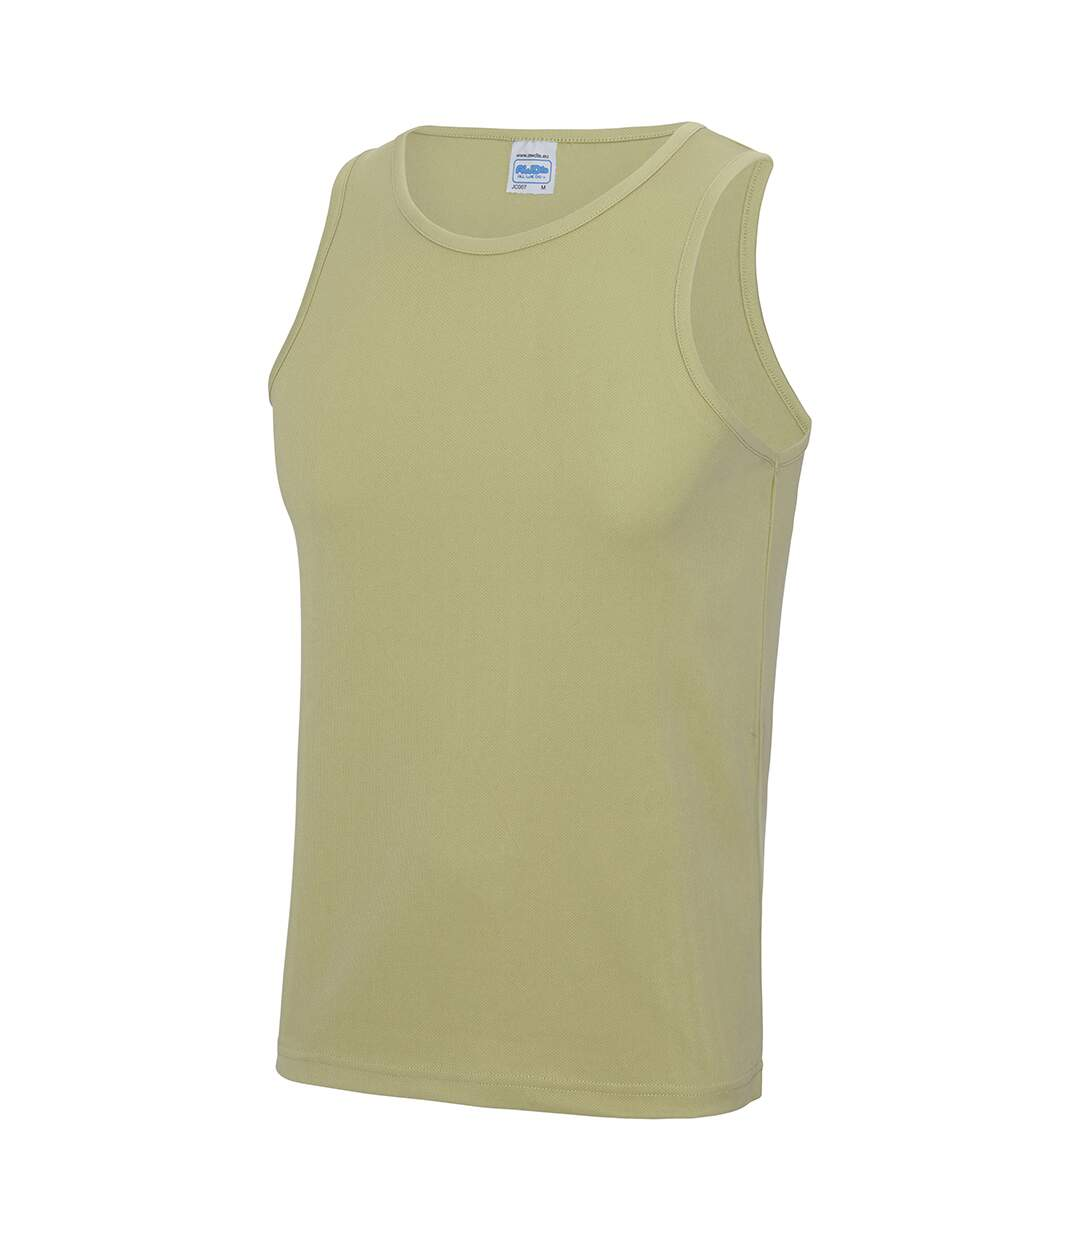 Just Cool Mens Sports Gym Plain Tank / Vest Top (Heather Grey) - UTRW687